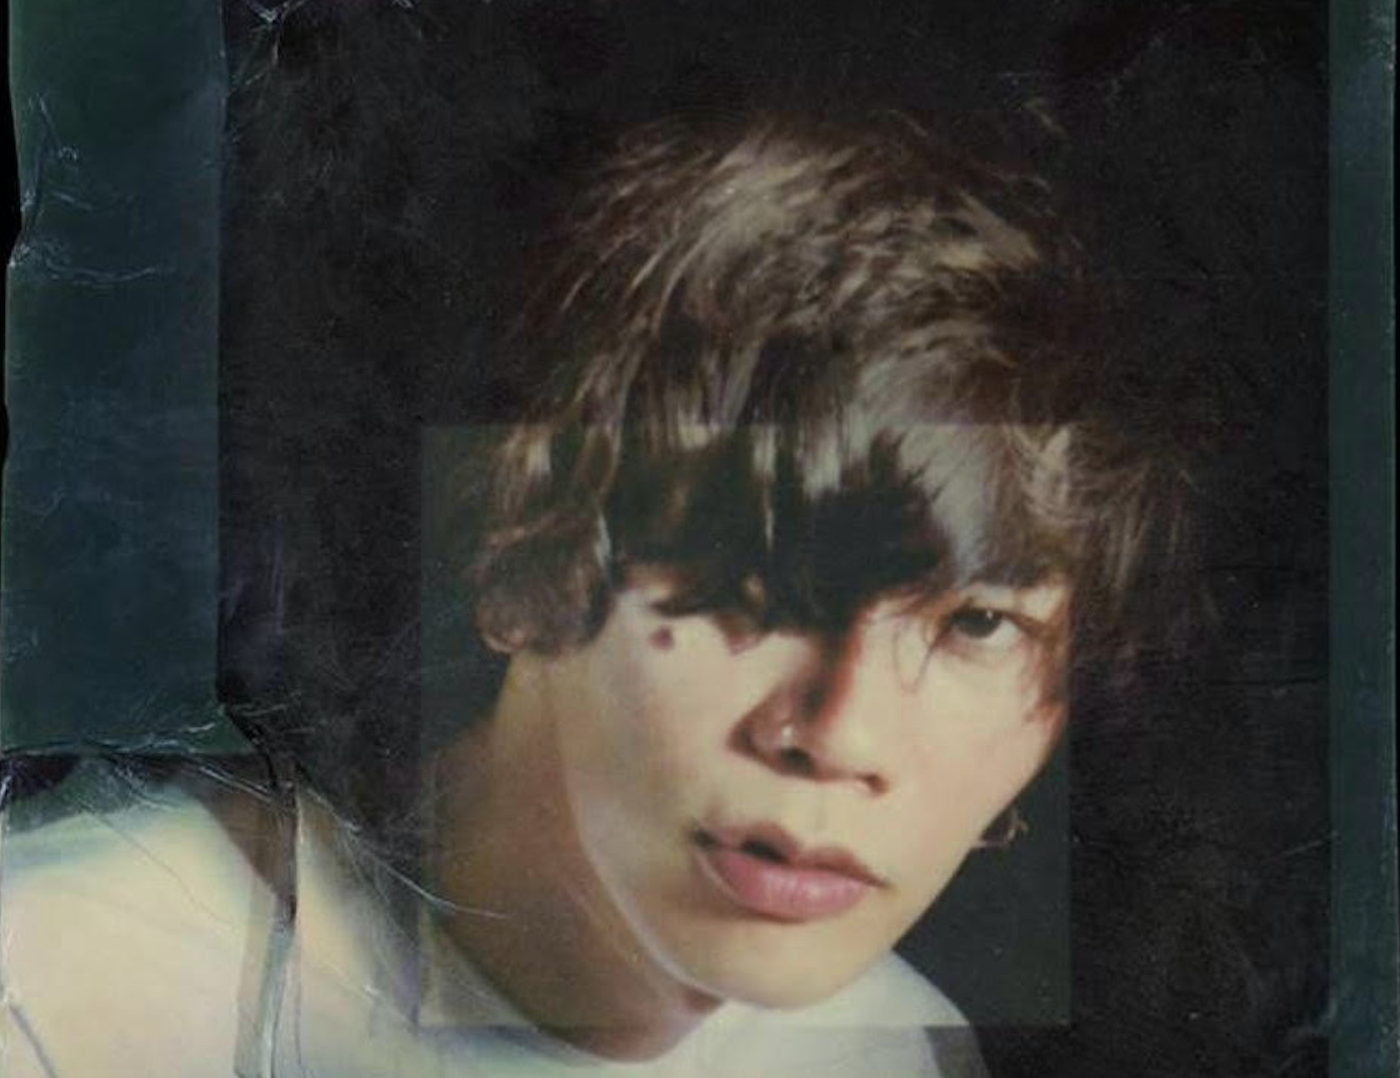 New Music Monday: Kenshi Yonezu Releases Studio Album STRAY SHEEP